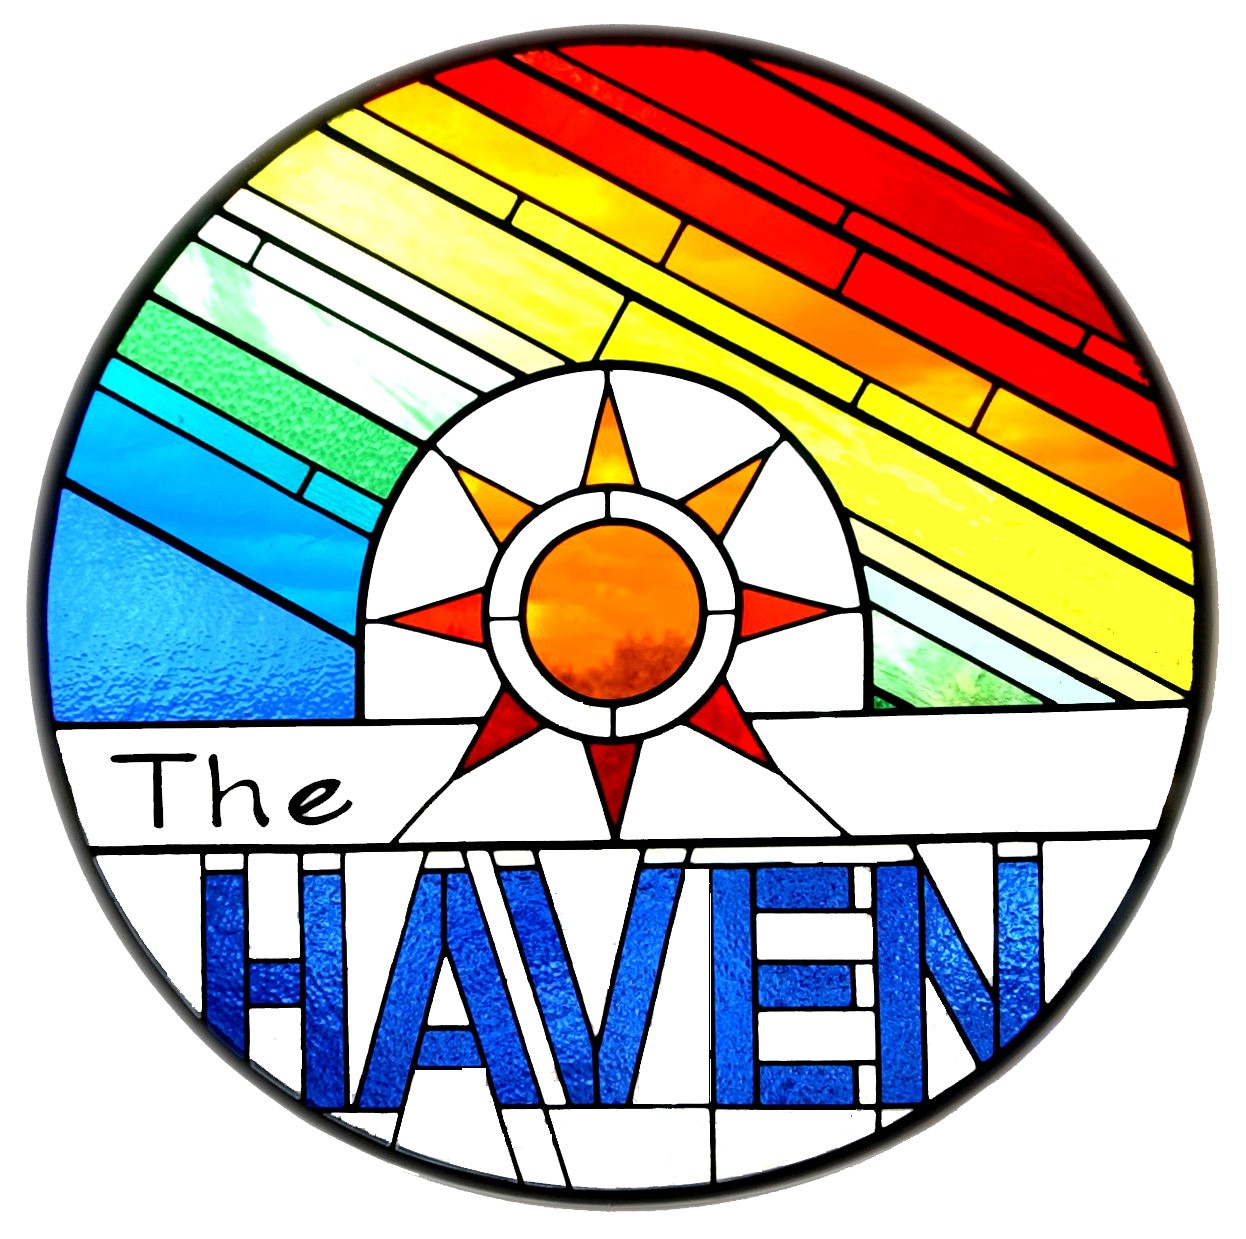 Volunteer Opportunity for CNHC registrants at The Haven Centre in Forth, Scotland